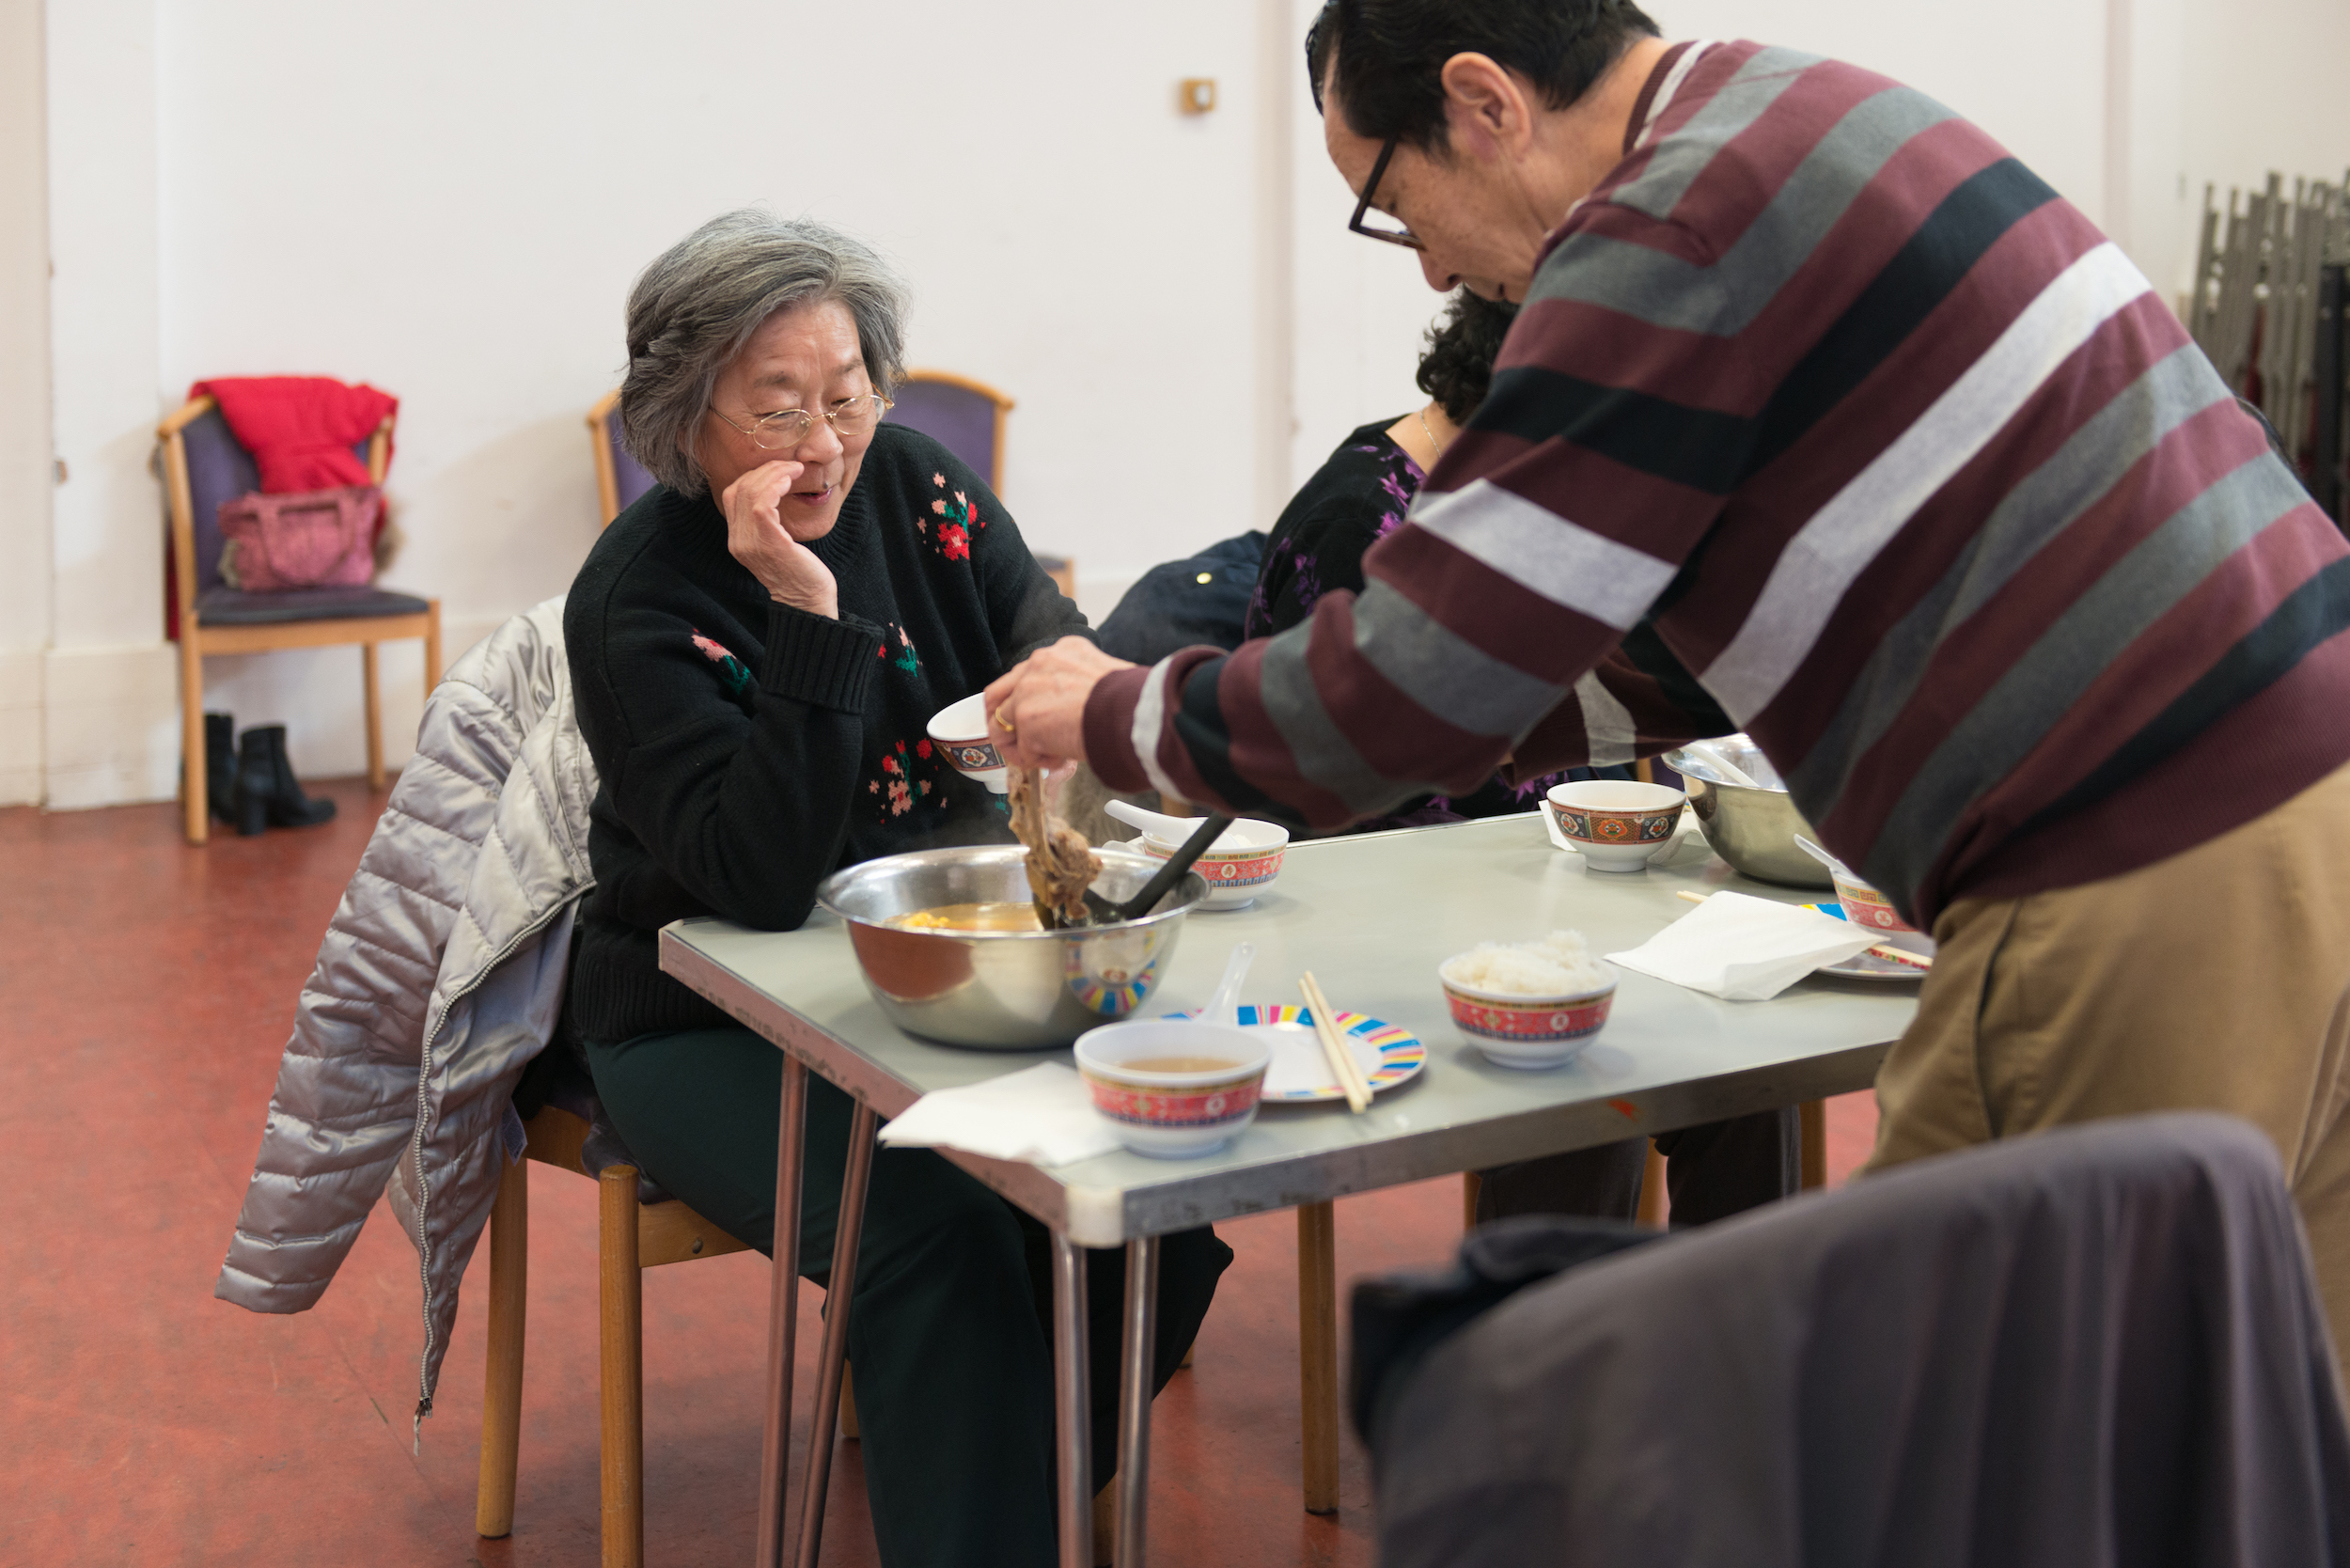 Man serving lunch, with two women sitting around a table